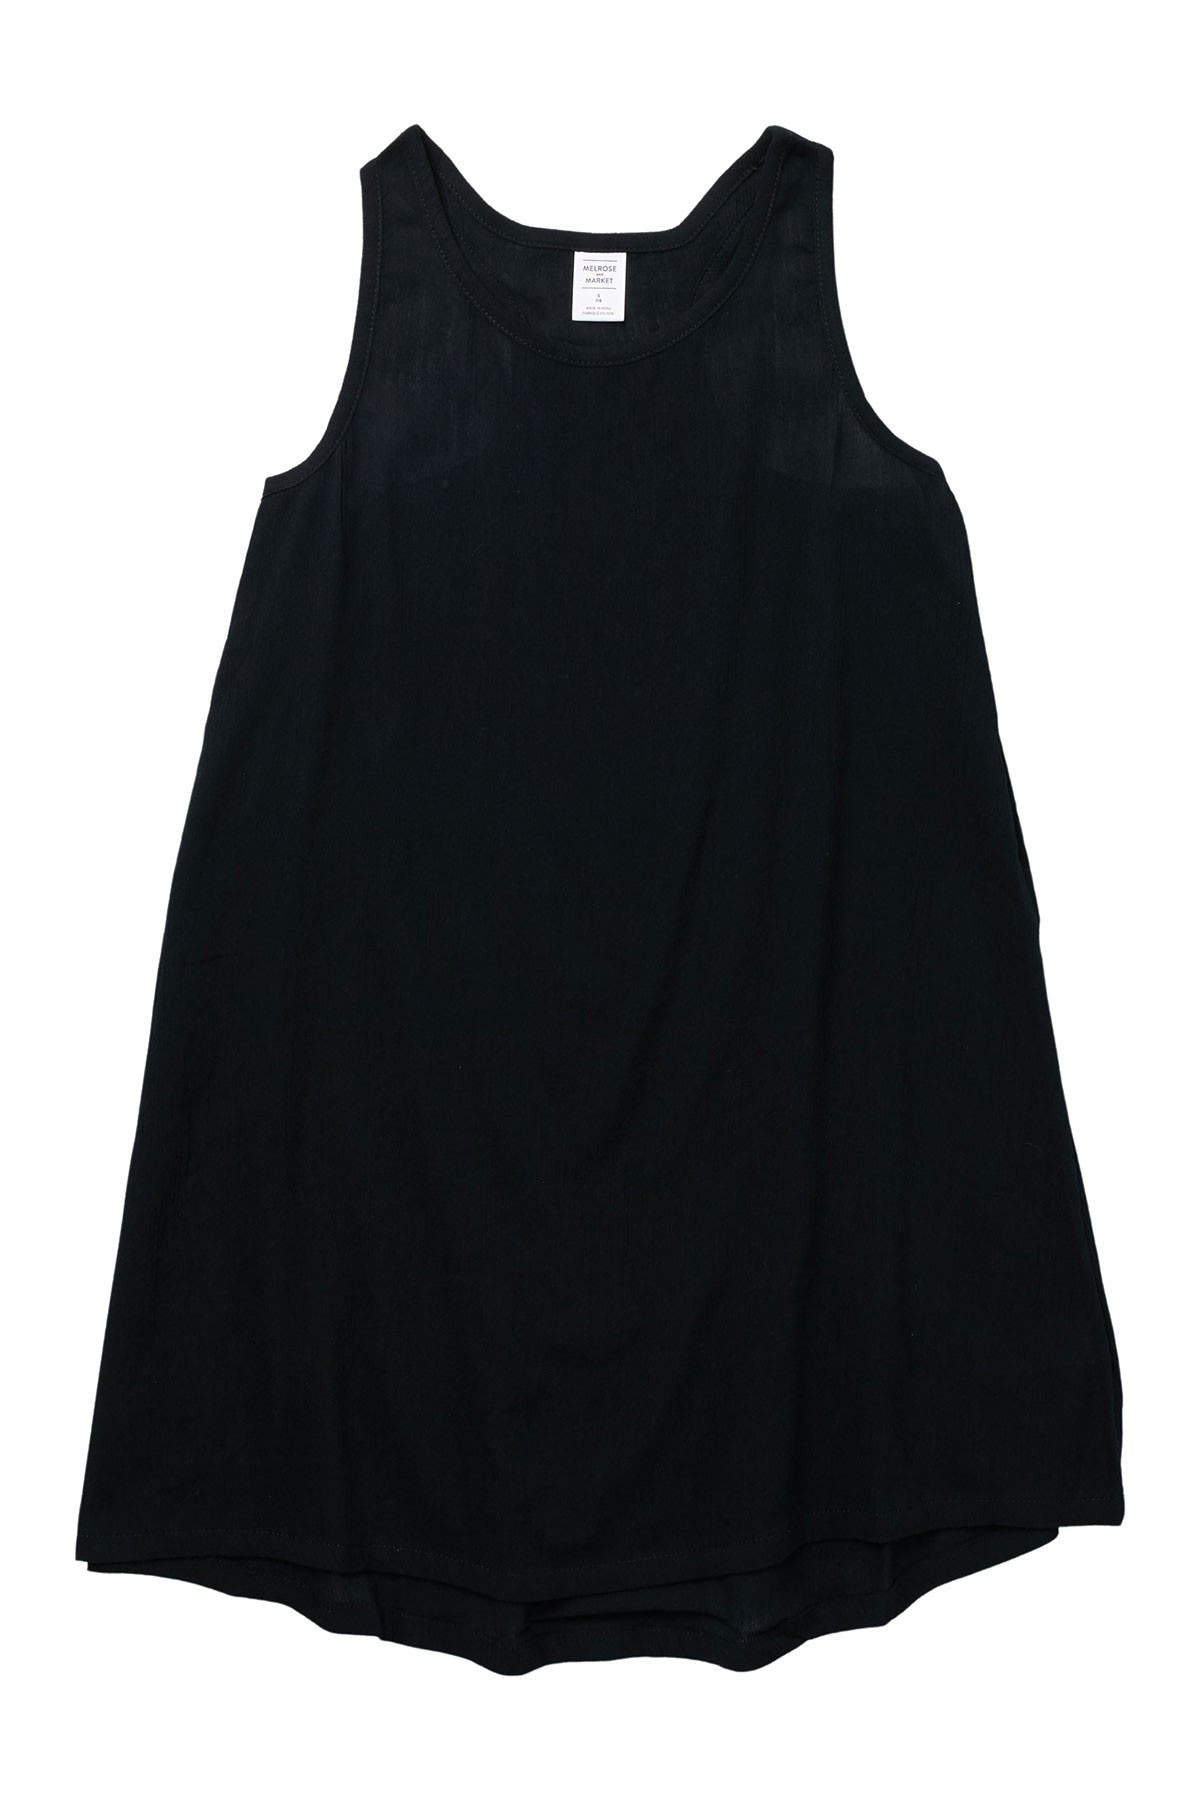 Image of Melrose and Market Swim Coverup Dress